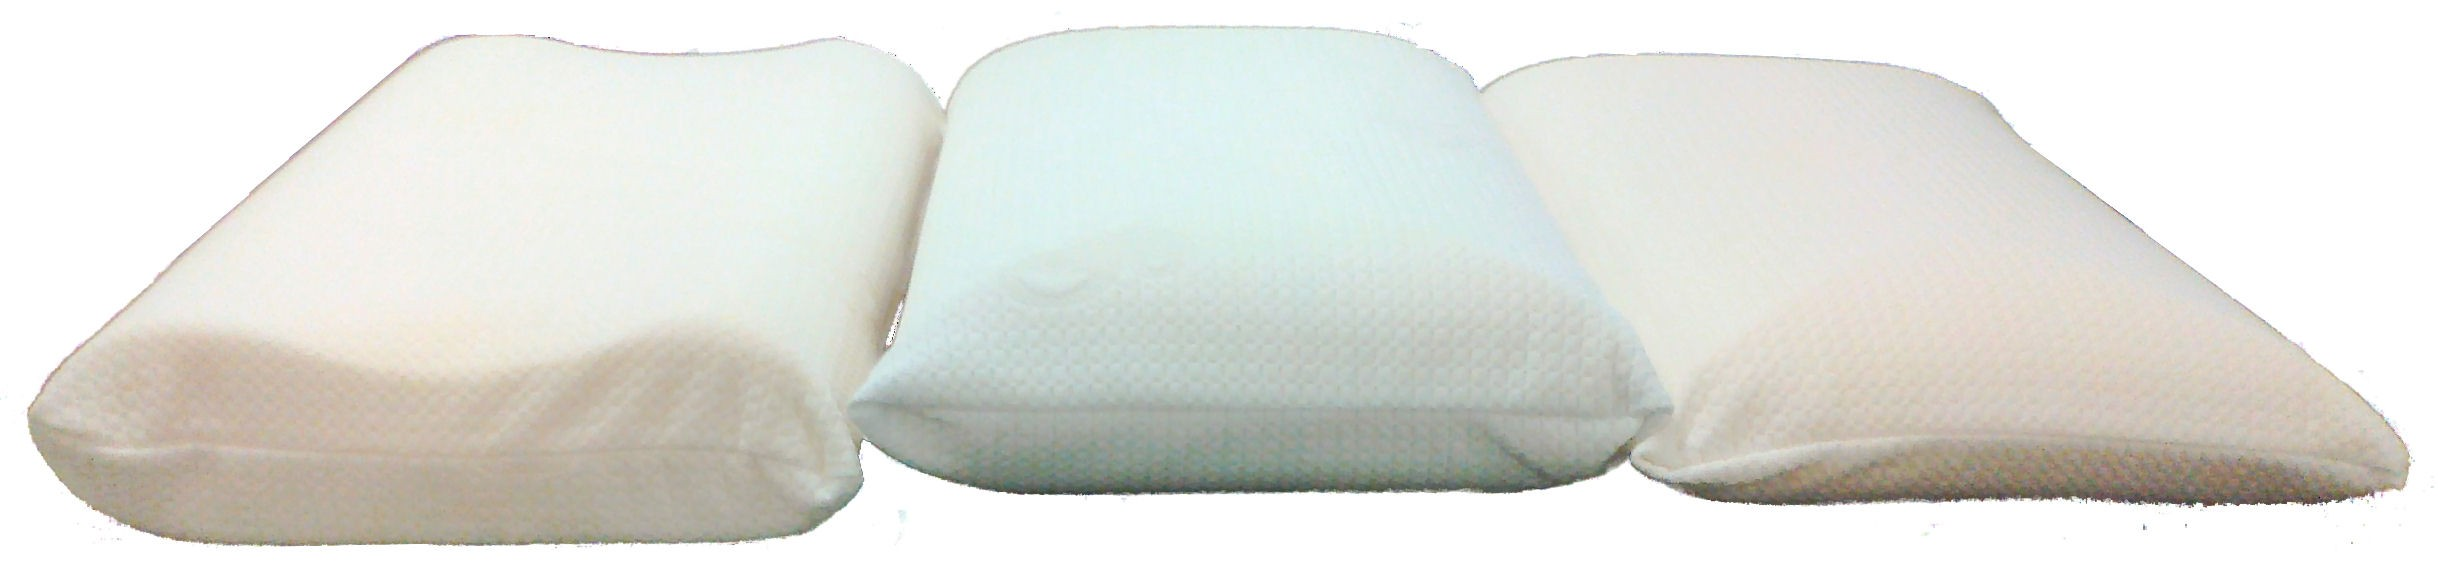 Visco Flex Pillows